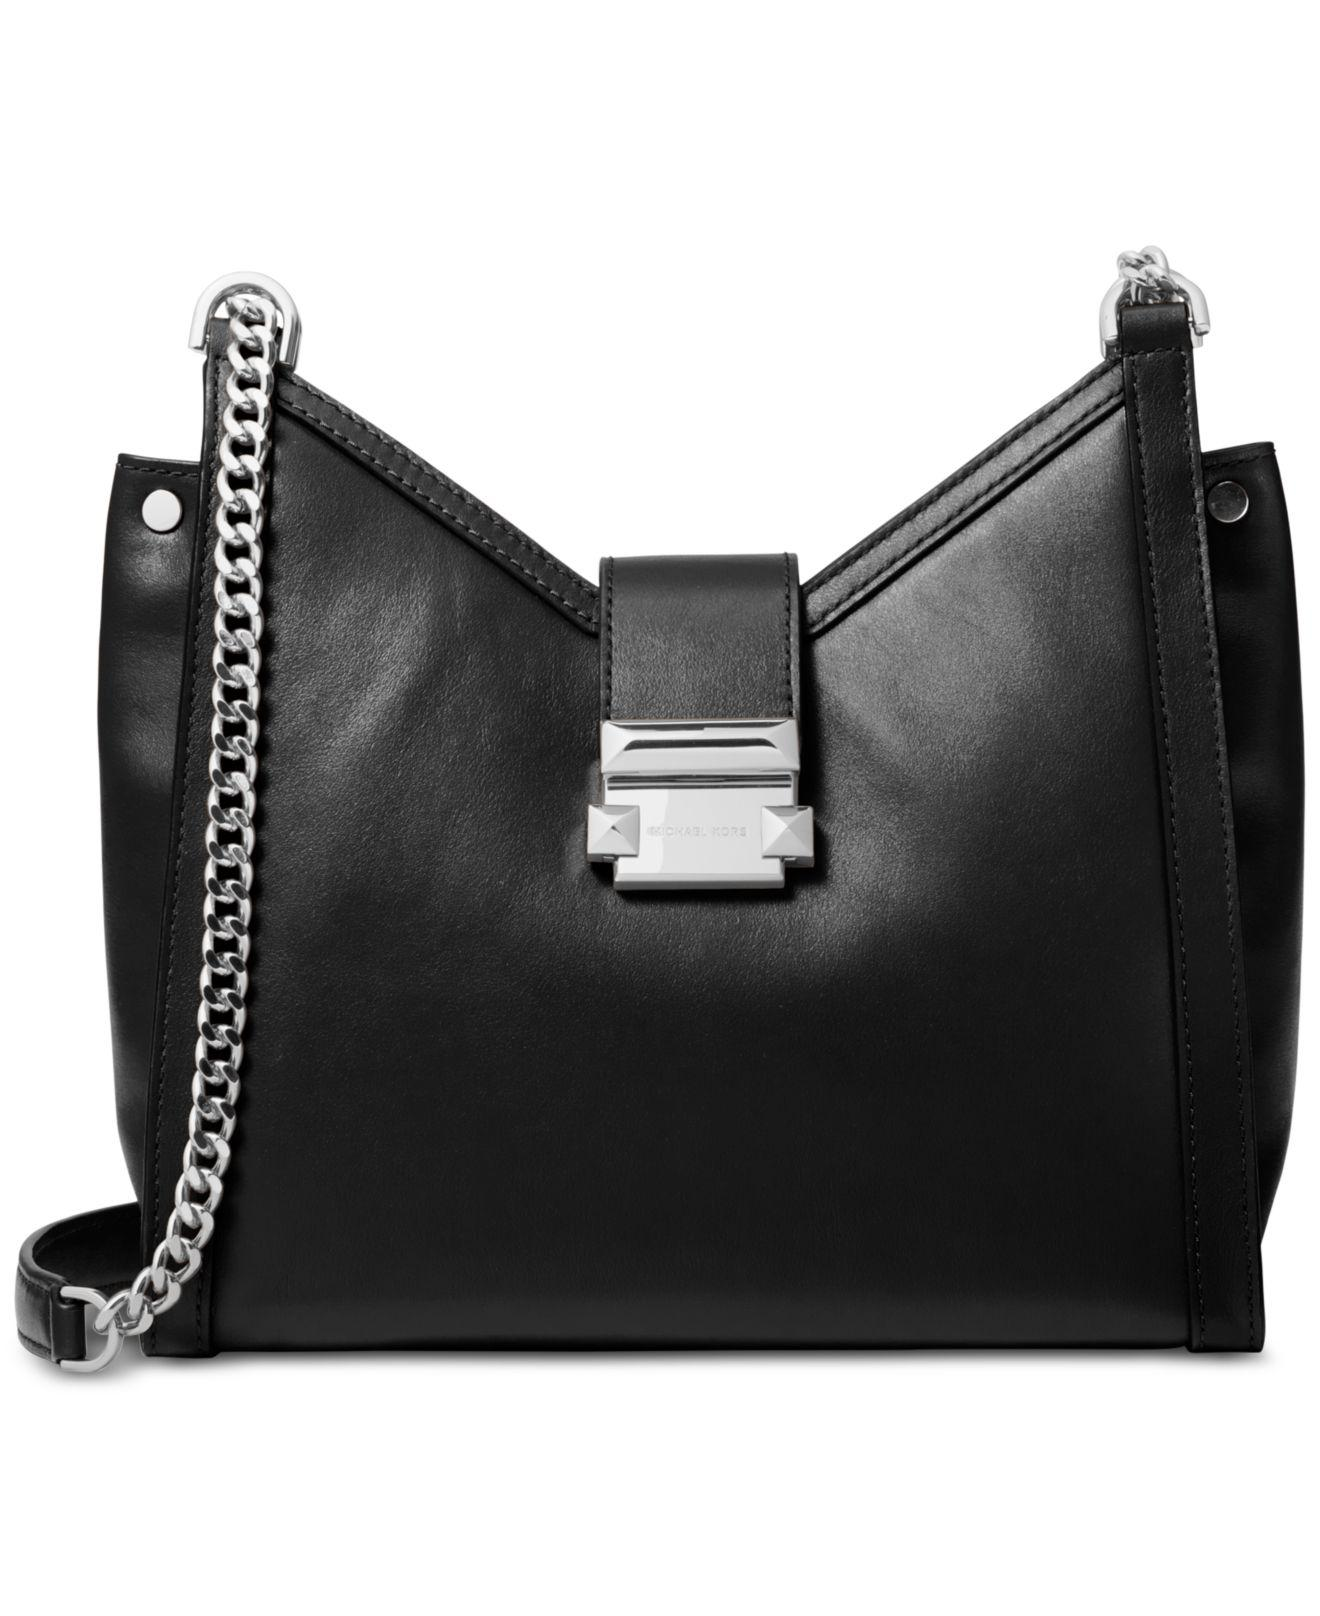 06dcf29b85380 Michael Kors Whitney Small Leather Shoulder Bag in Black - Save 45 ...